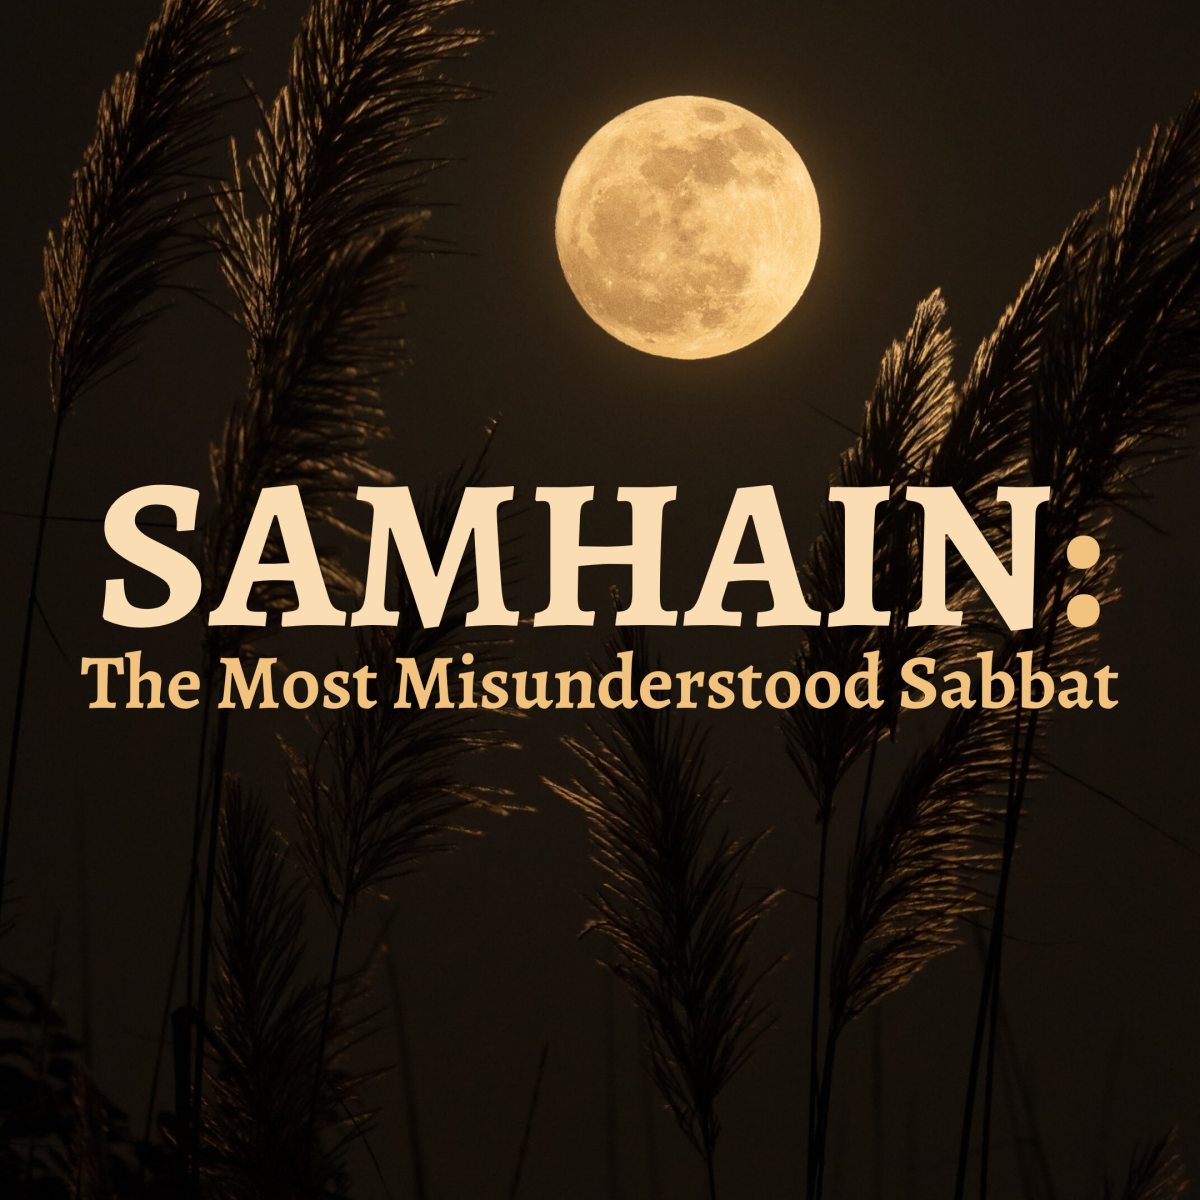 Learn more about Samhain, such as its lessons, timing and celebrations.